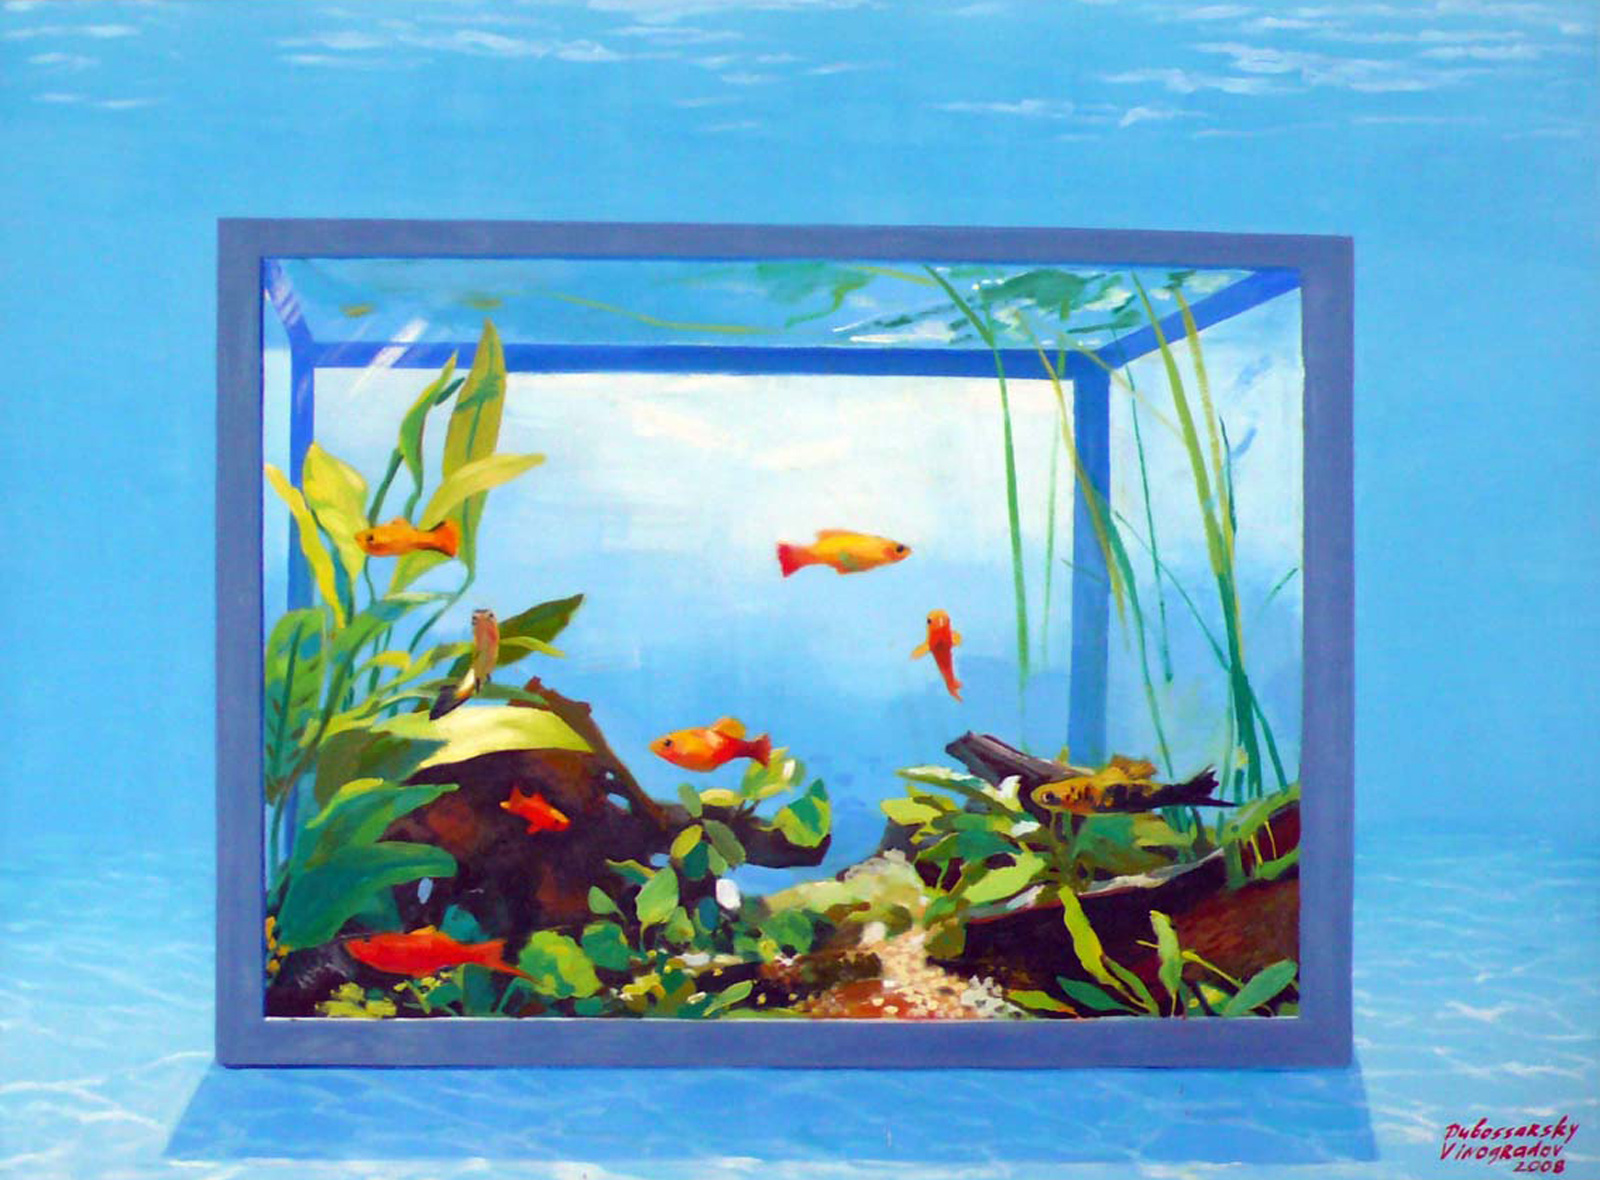 Dubossarsky & Vinogradov Aquarium, 2008 oil on canvas, 145 x 195 cm 57 x 77 ins. Vladimir Dubossarsky and Alexander Vinogradov